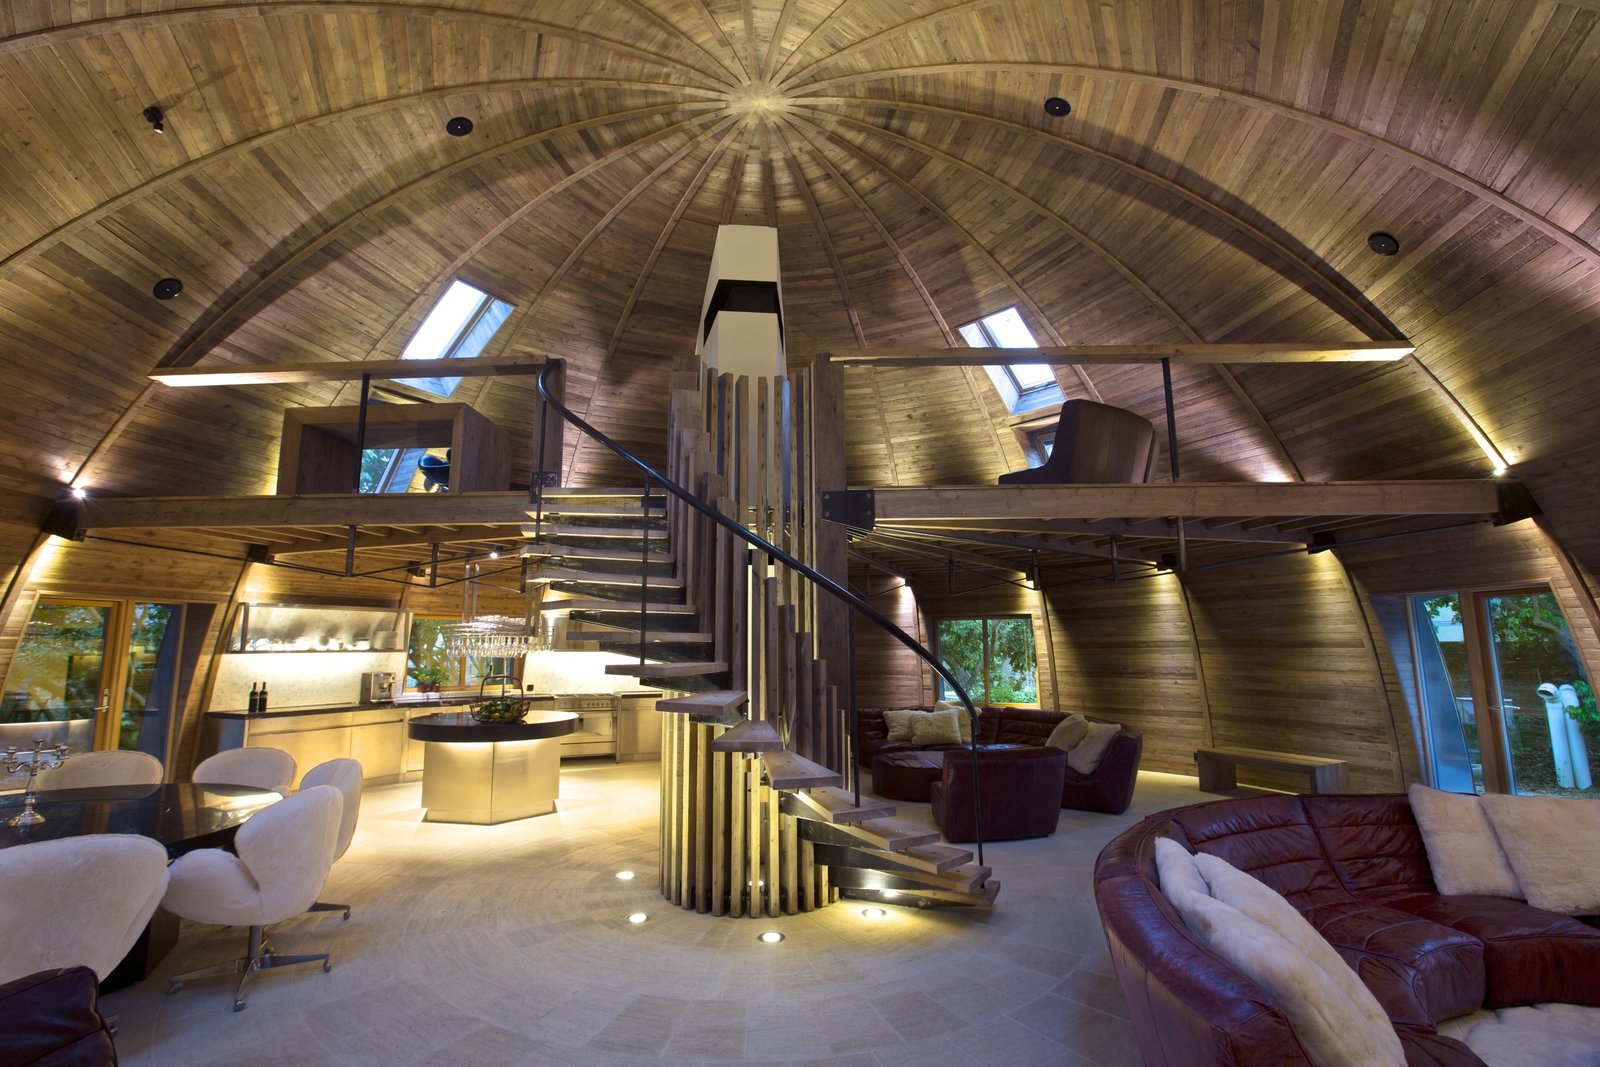 The Dome Home is divided into separate areas where designers can gather or break off to explore ideas. In the loft, a wooden desk blends seamlessly into its wooden environs. Meanwhile, on the lower level Timothy Oulton Shabby sofas with cushions made of real sheepskin off-cuts provide a comfortable place to congregate.